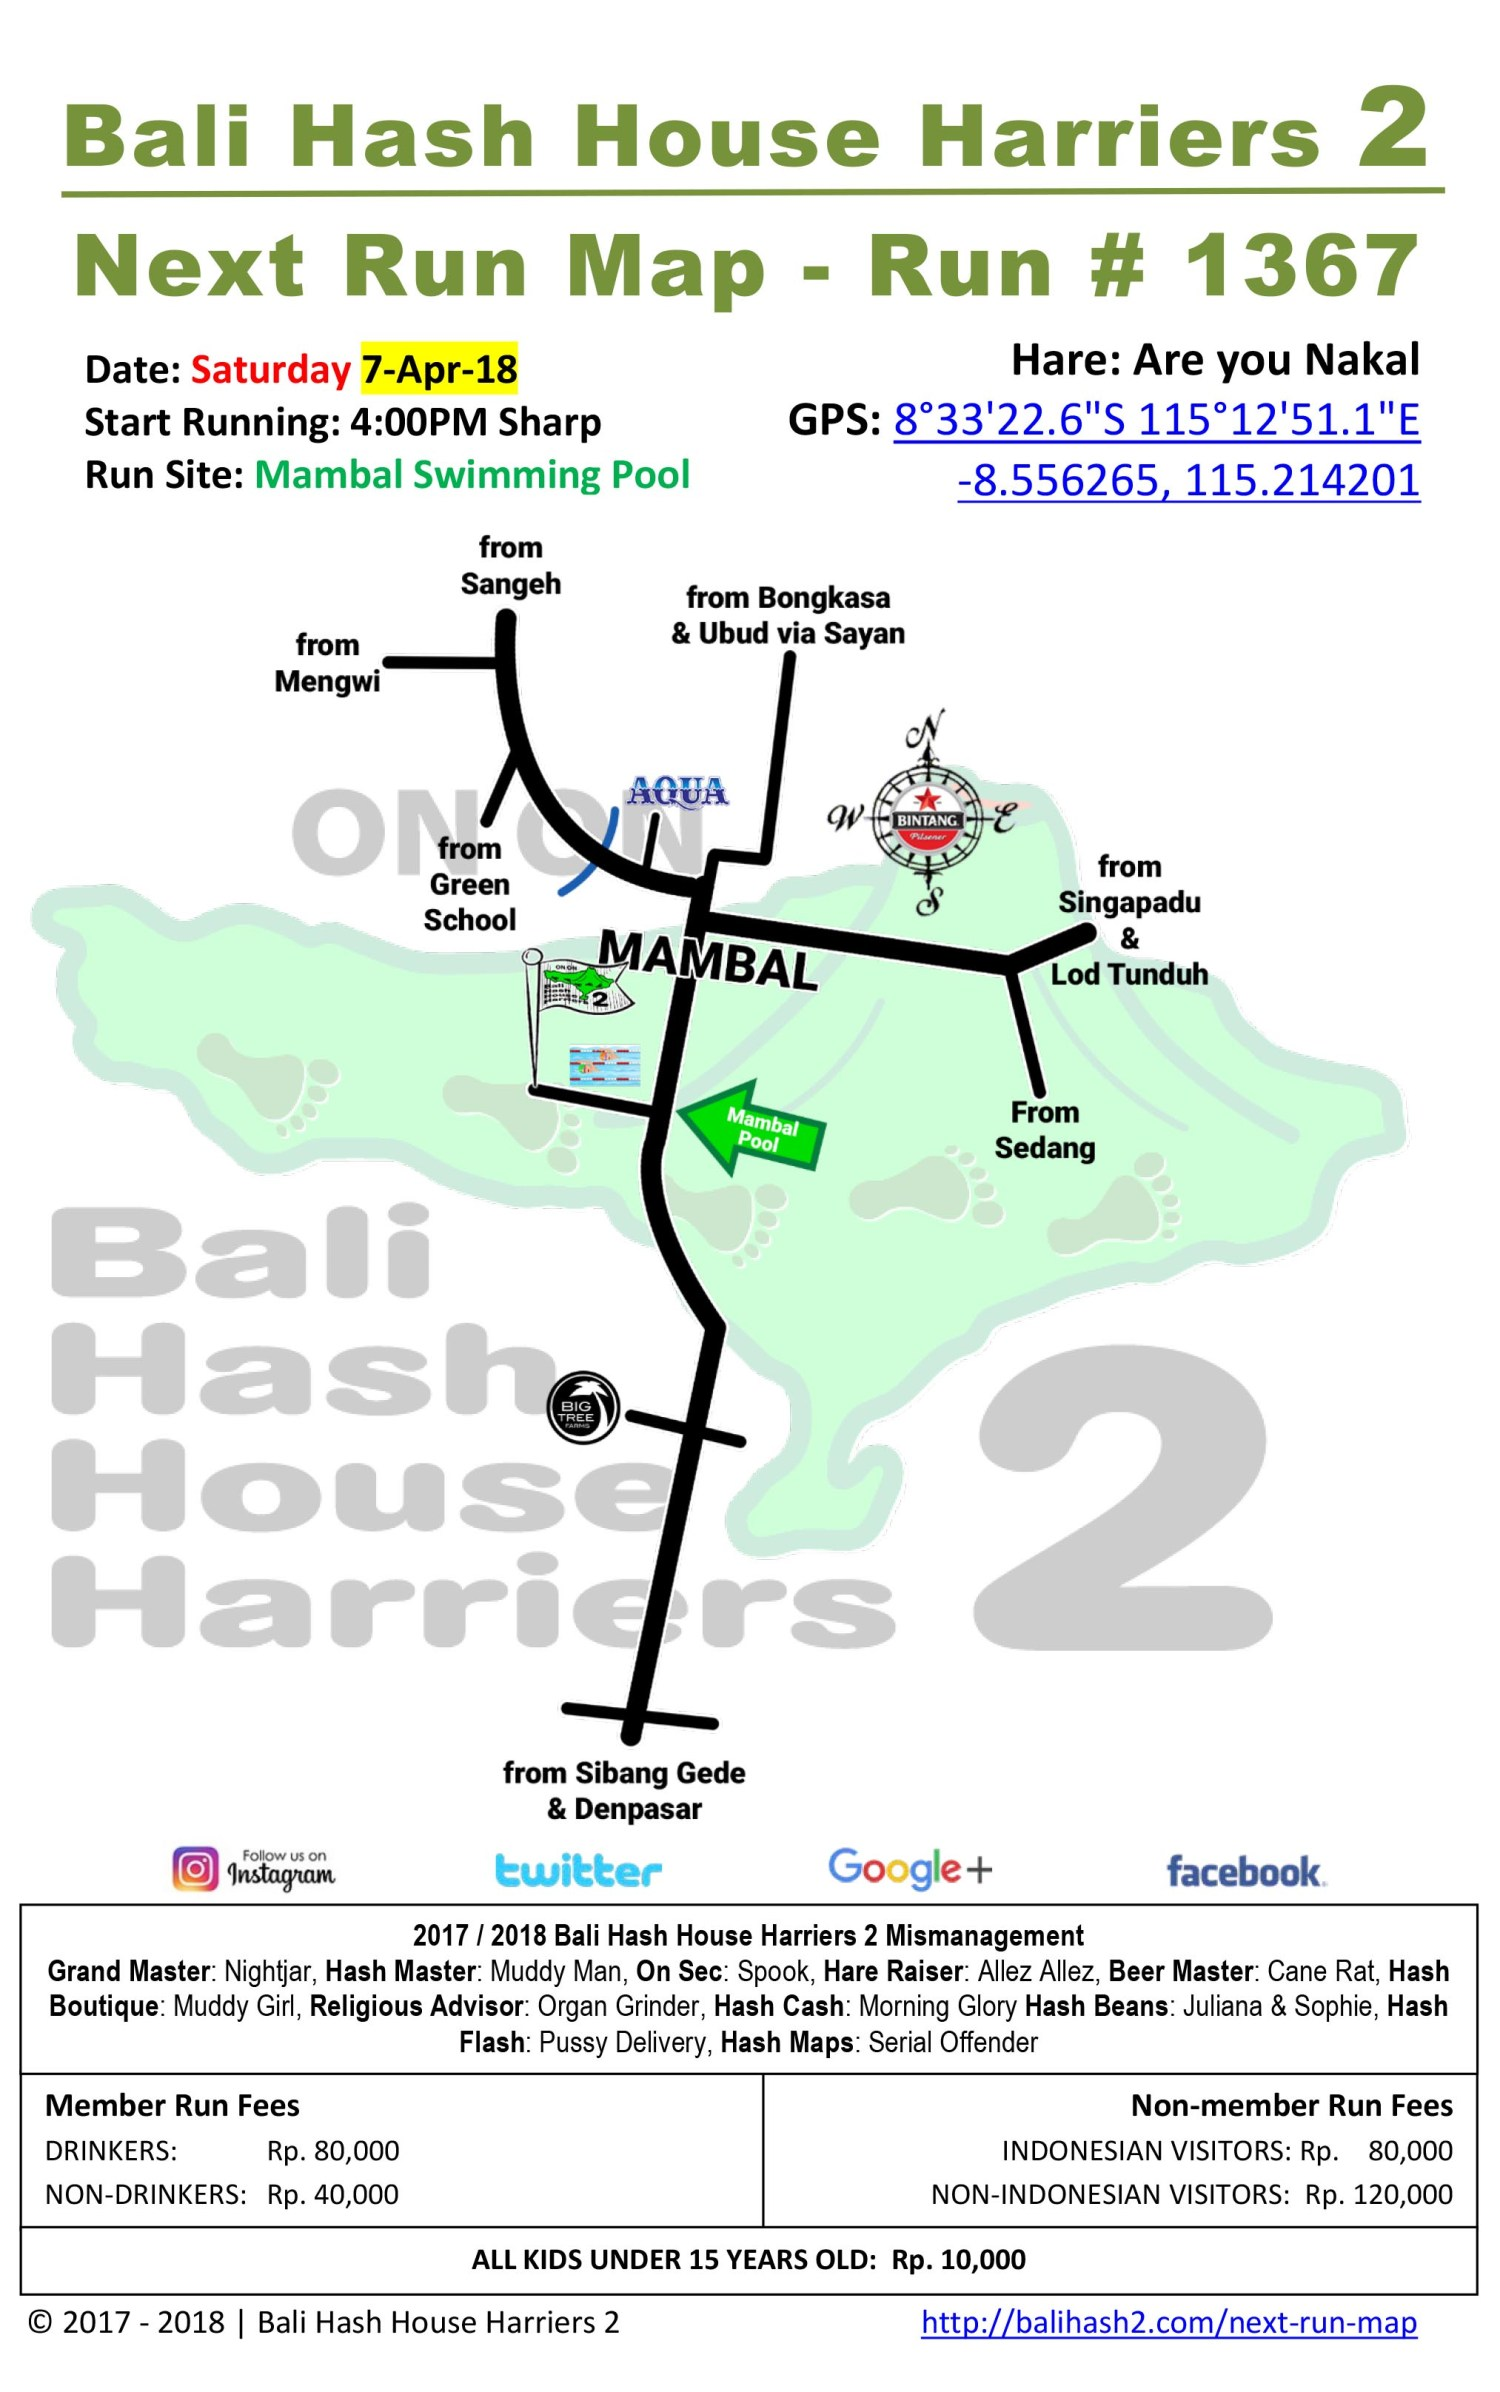 BHHH2-Next-Run-Map-1367-Mambal-Swimming-Pool-Saturday-7-Apr-18.